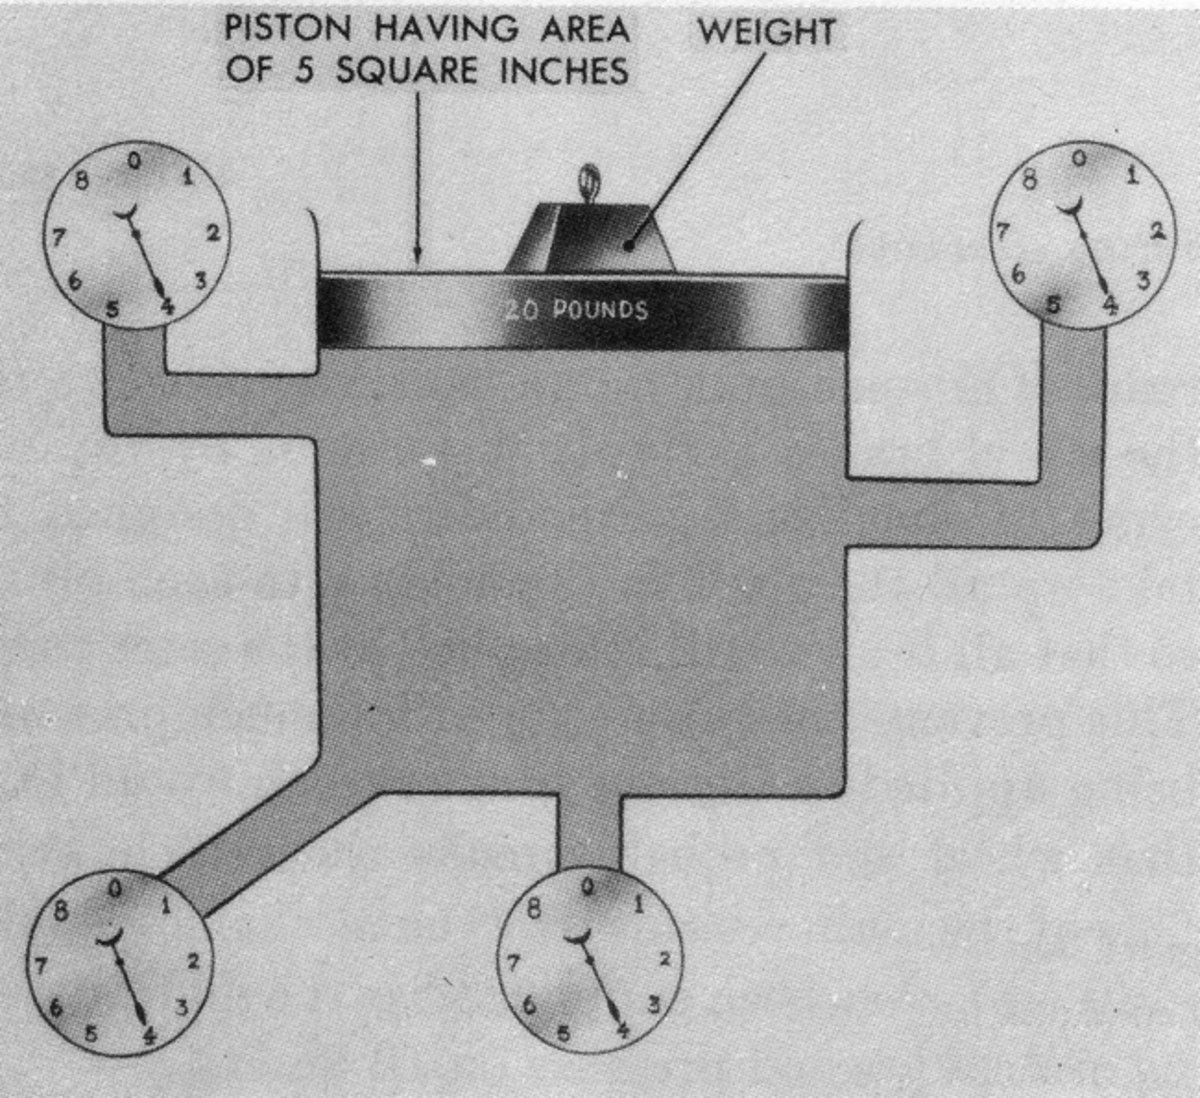 Since, for most practical purposes on this planet, a liquid is not compressible, any force, such as one's foot on a brake pedal, is distributed equally throughout a confined liquid, which in this case is the brake fluid in a vehicle's system.